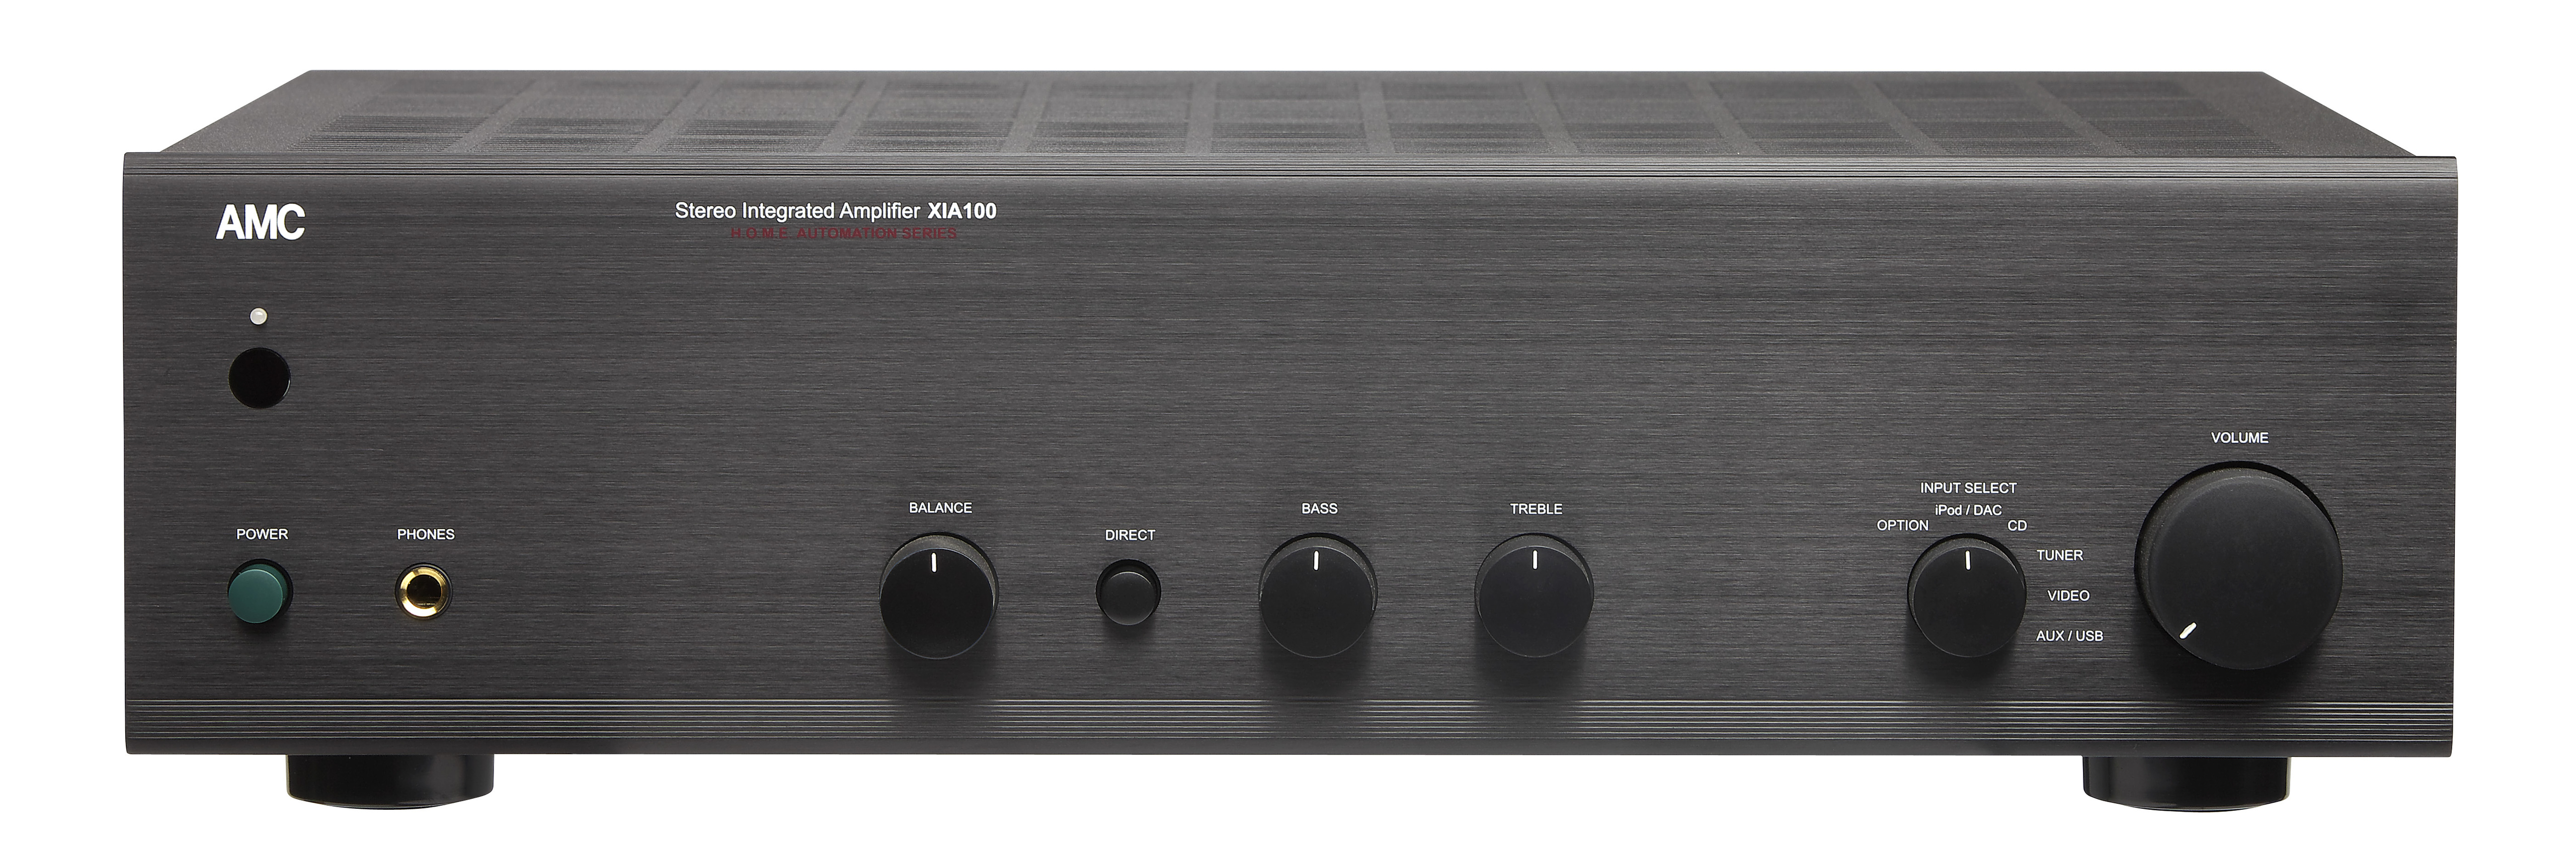 AMC XIA 100s Solid State 100W Integrated Amp. At True Audiophile.